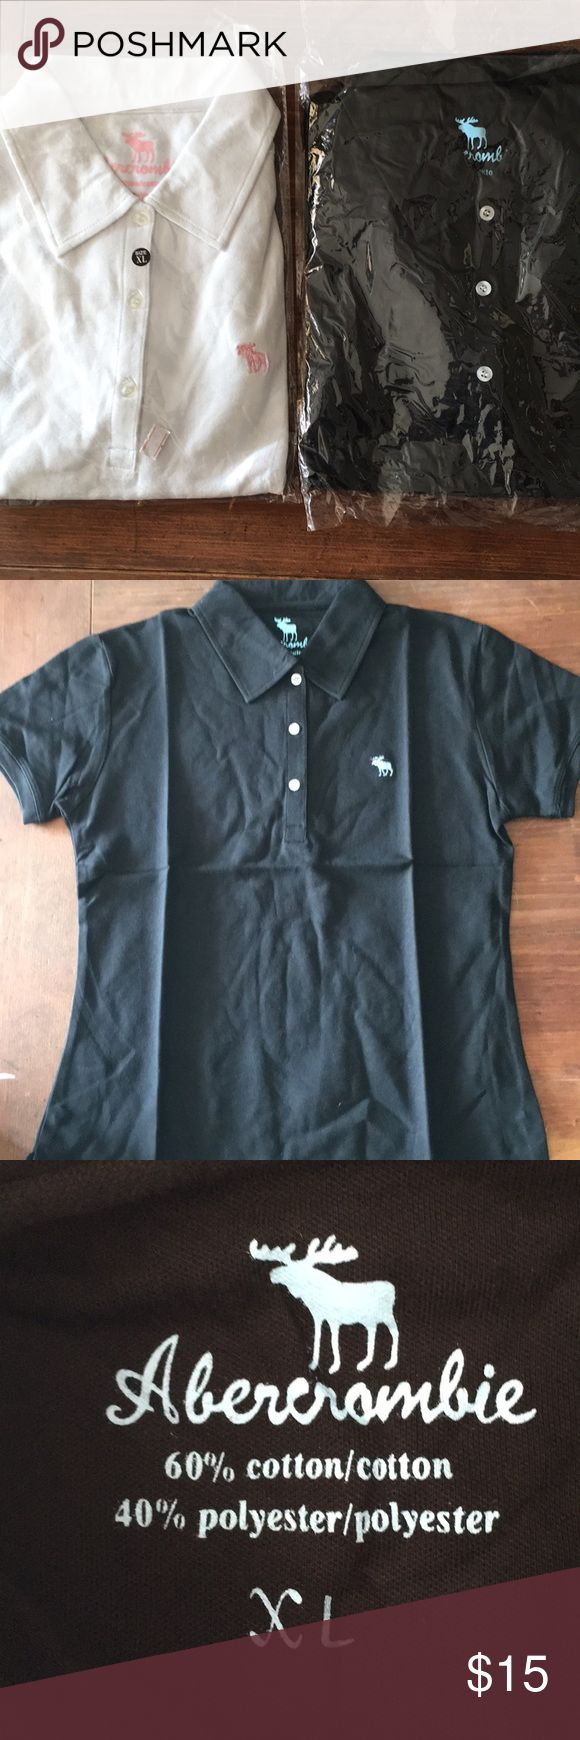 Abercrombie T-shirts Brand new still in plastic never worn one is black with blue moose other is white with pink moose. Polo shirts Abercrombie & Fitch Shirts & Tops Polos